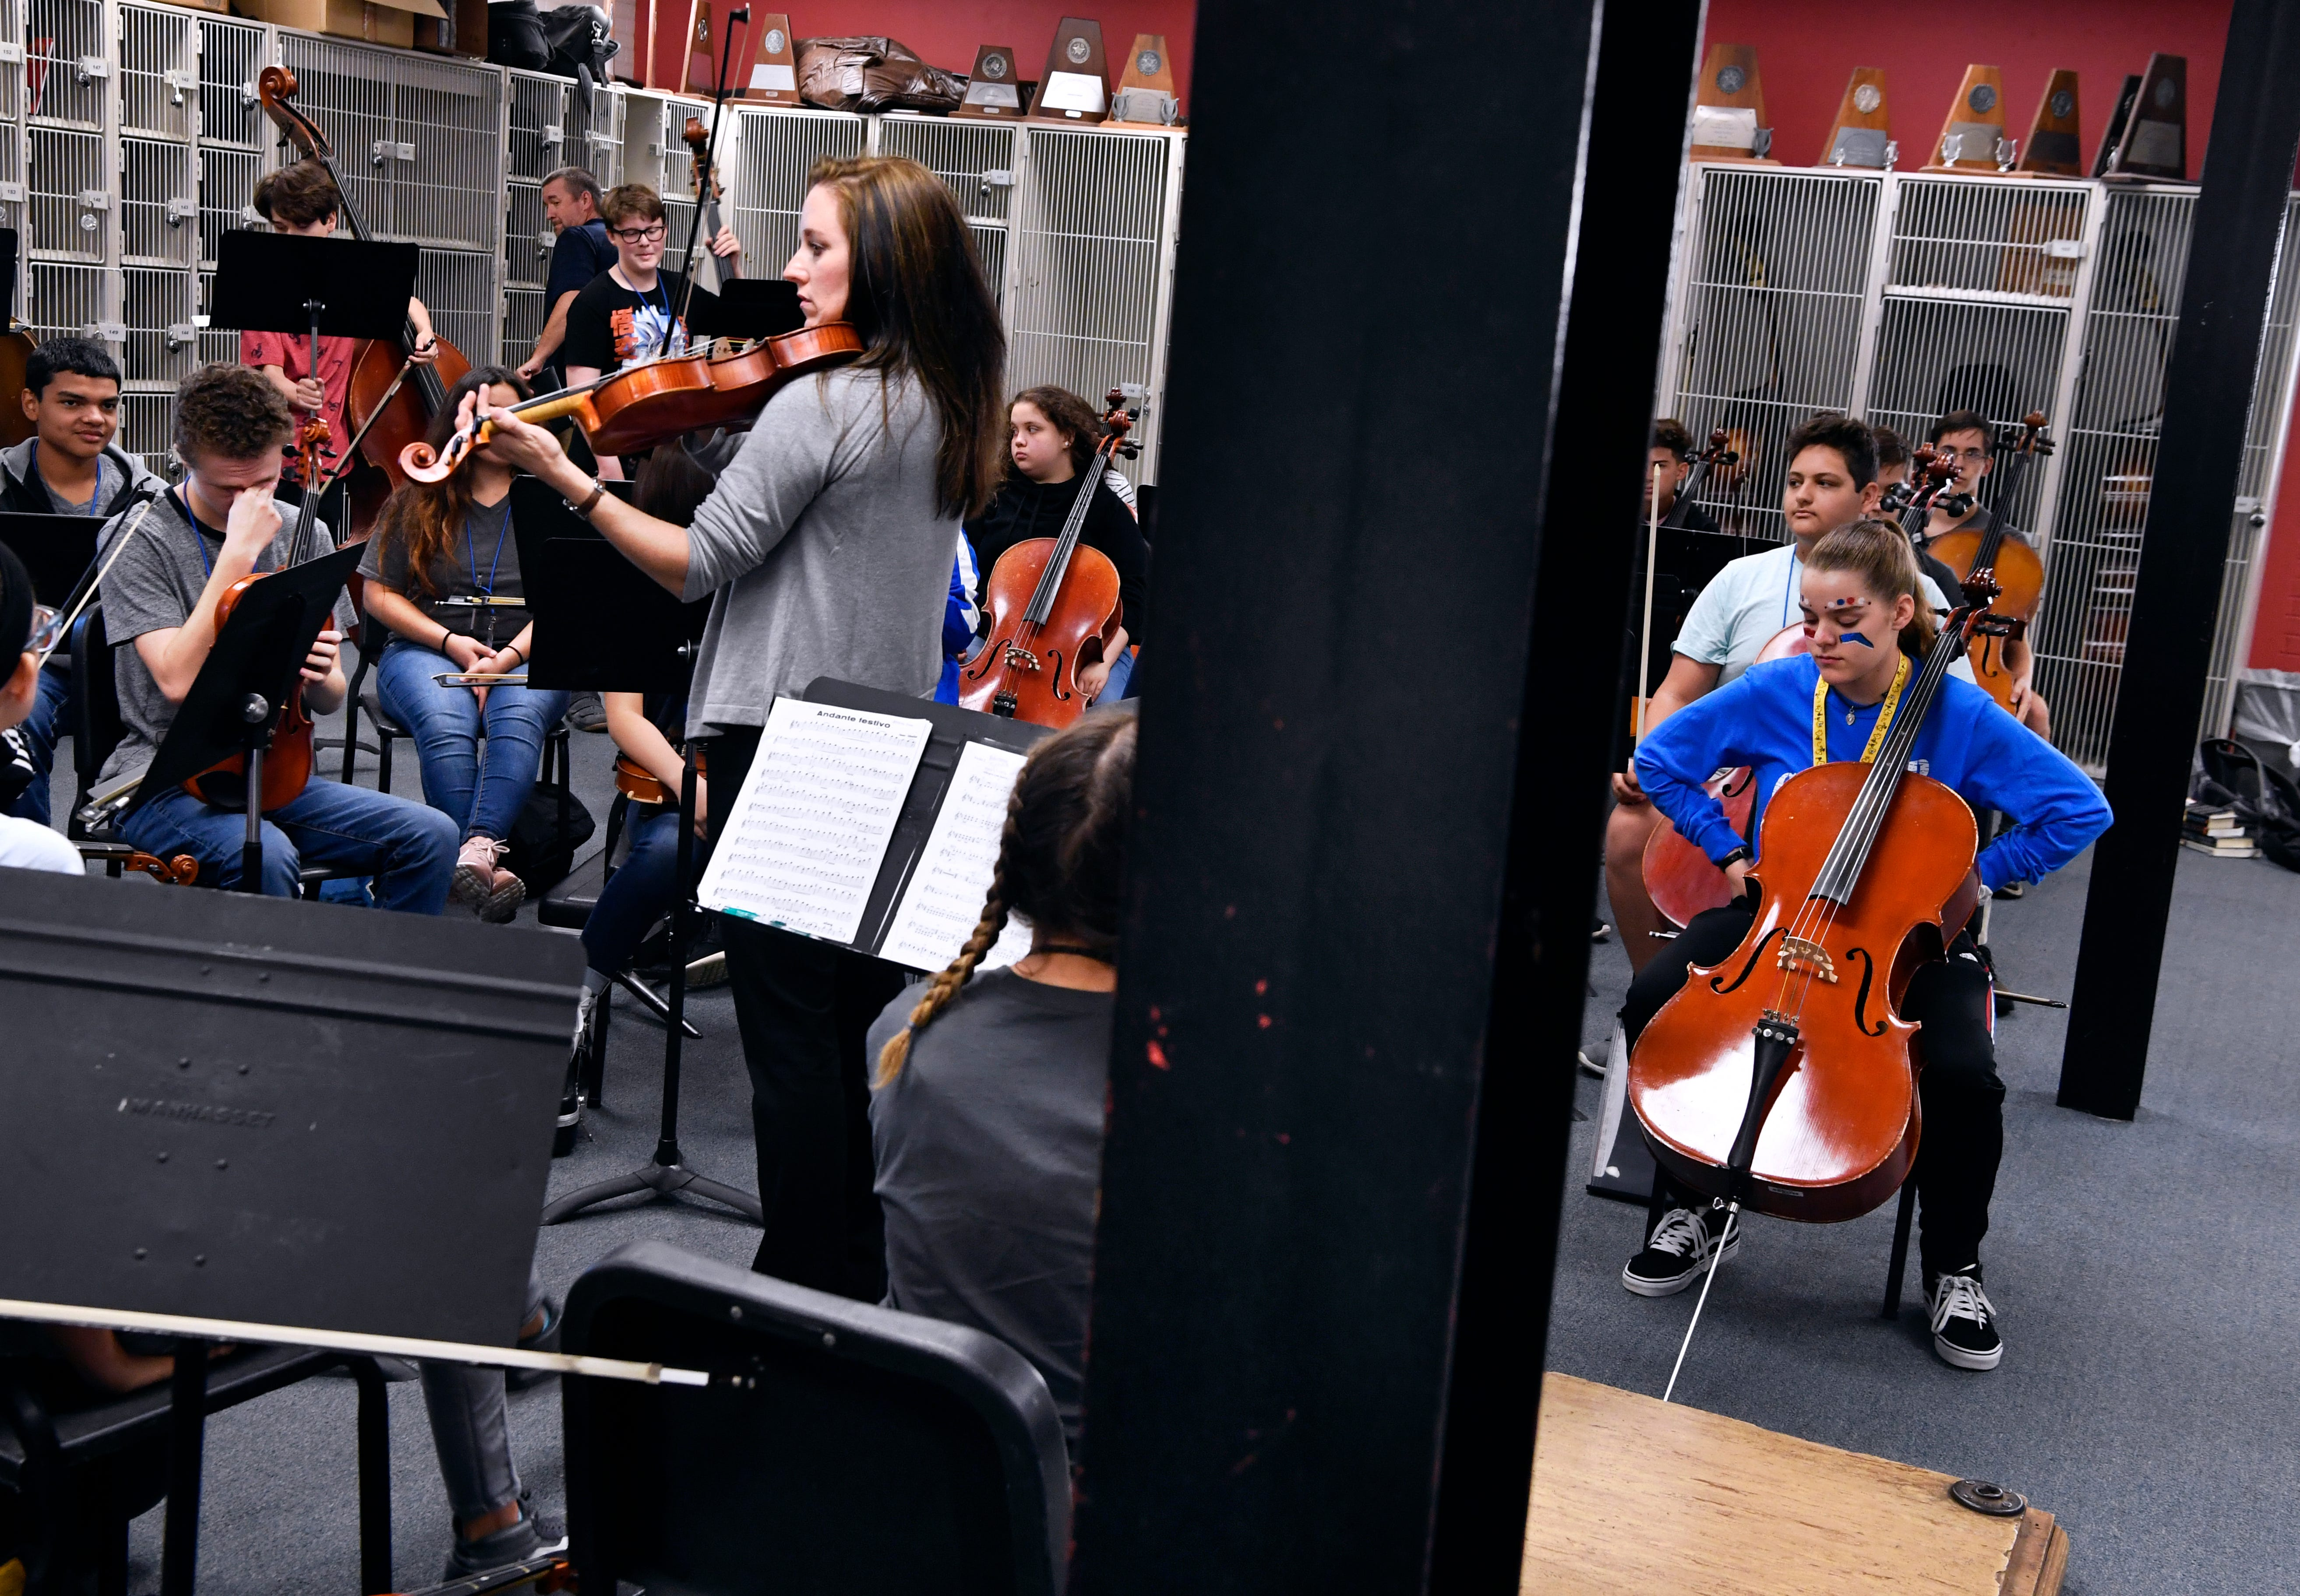 Darcy Radcliffe, the director of orchestra at Cooper and Abilene high schools, leads a rehearsal at Cooper. The twin I-beams supports in the room are just two of the obstacles students have to cope with in class.